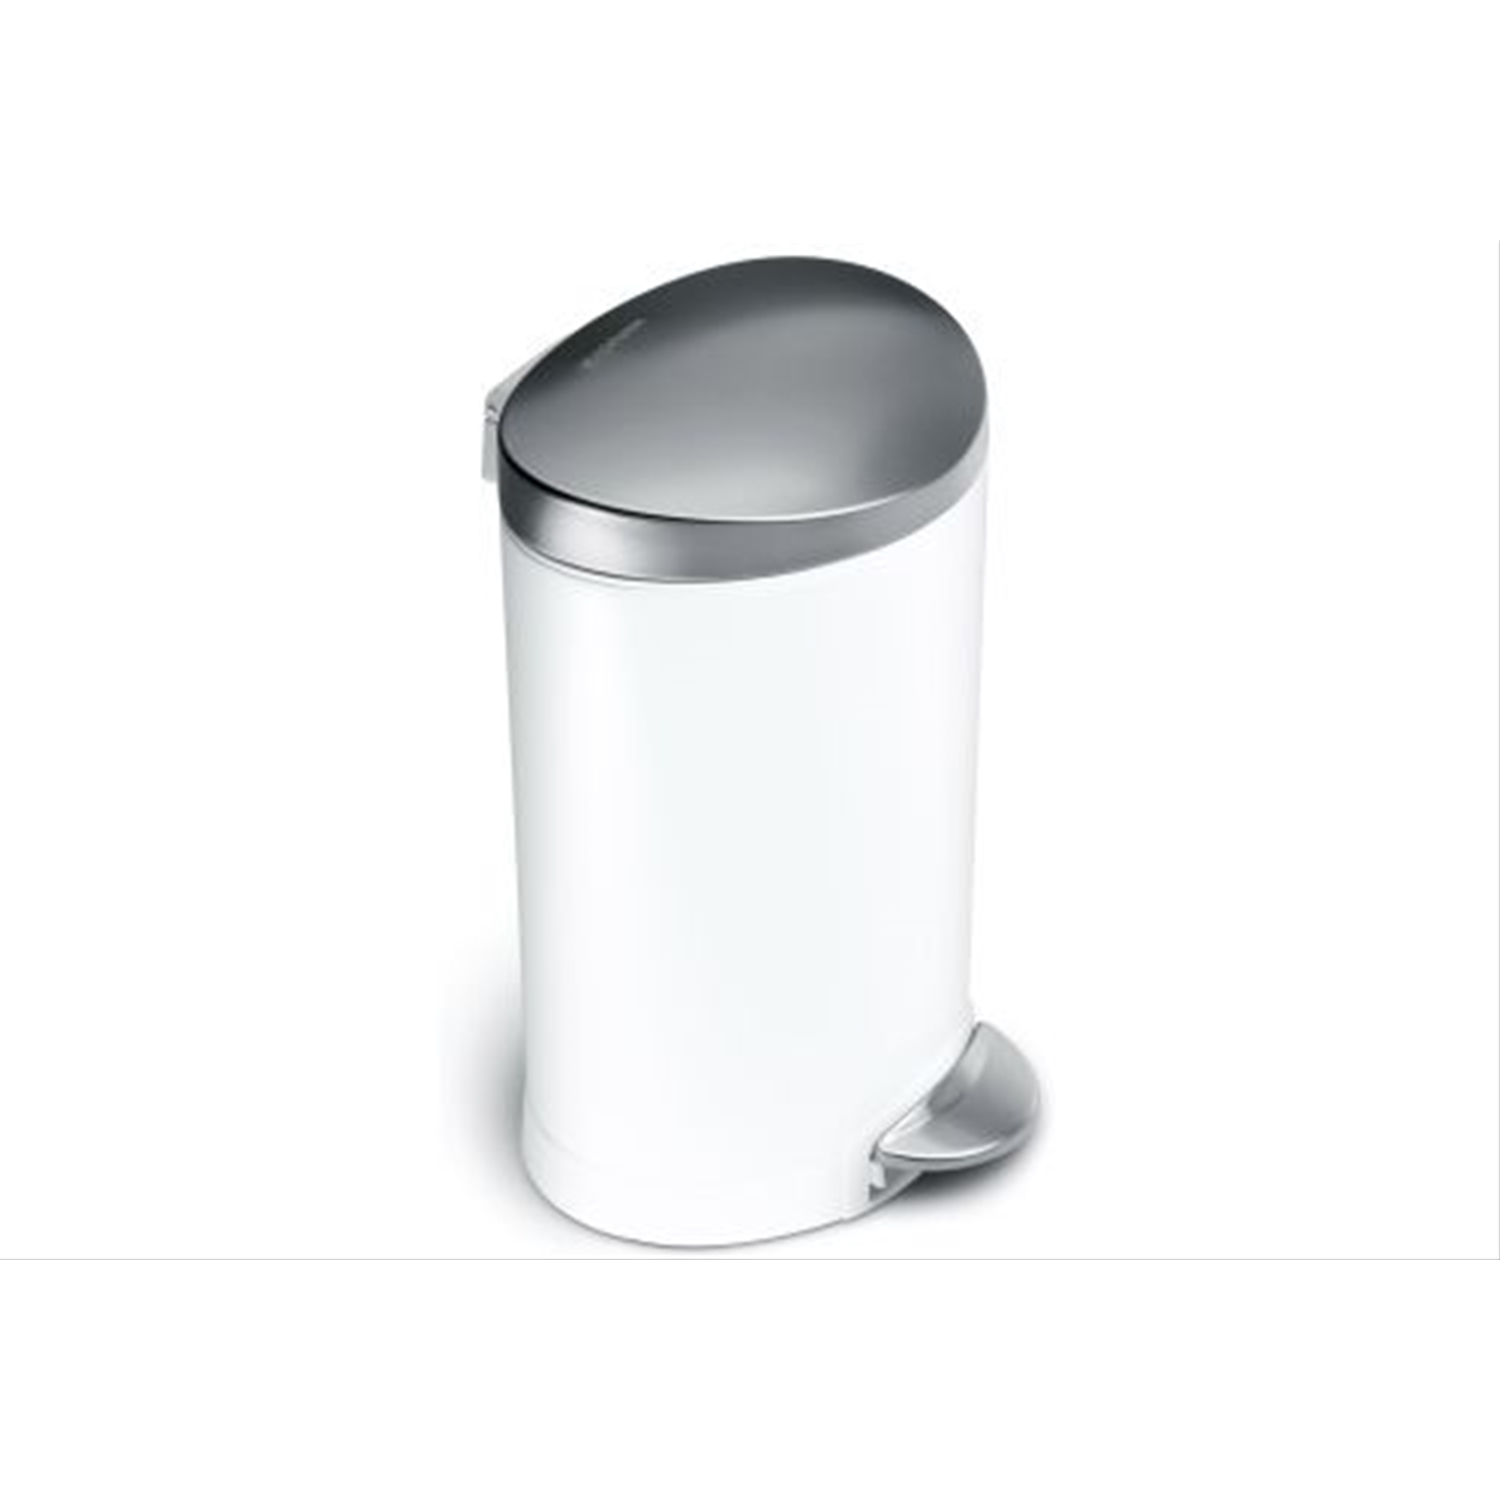 Image of Simplehuman 6L Semi Round Pedal Bin, White & Stainless Steel